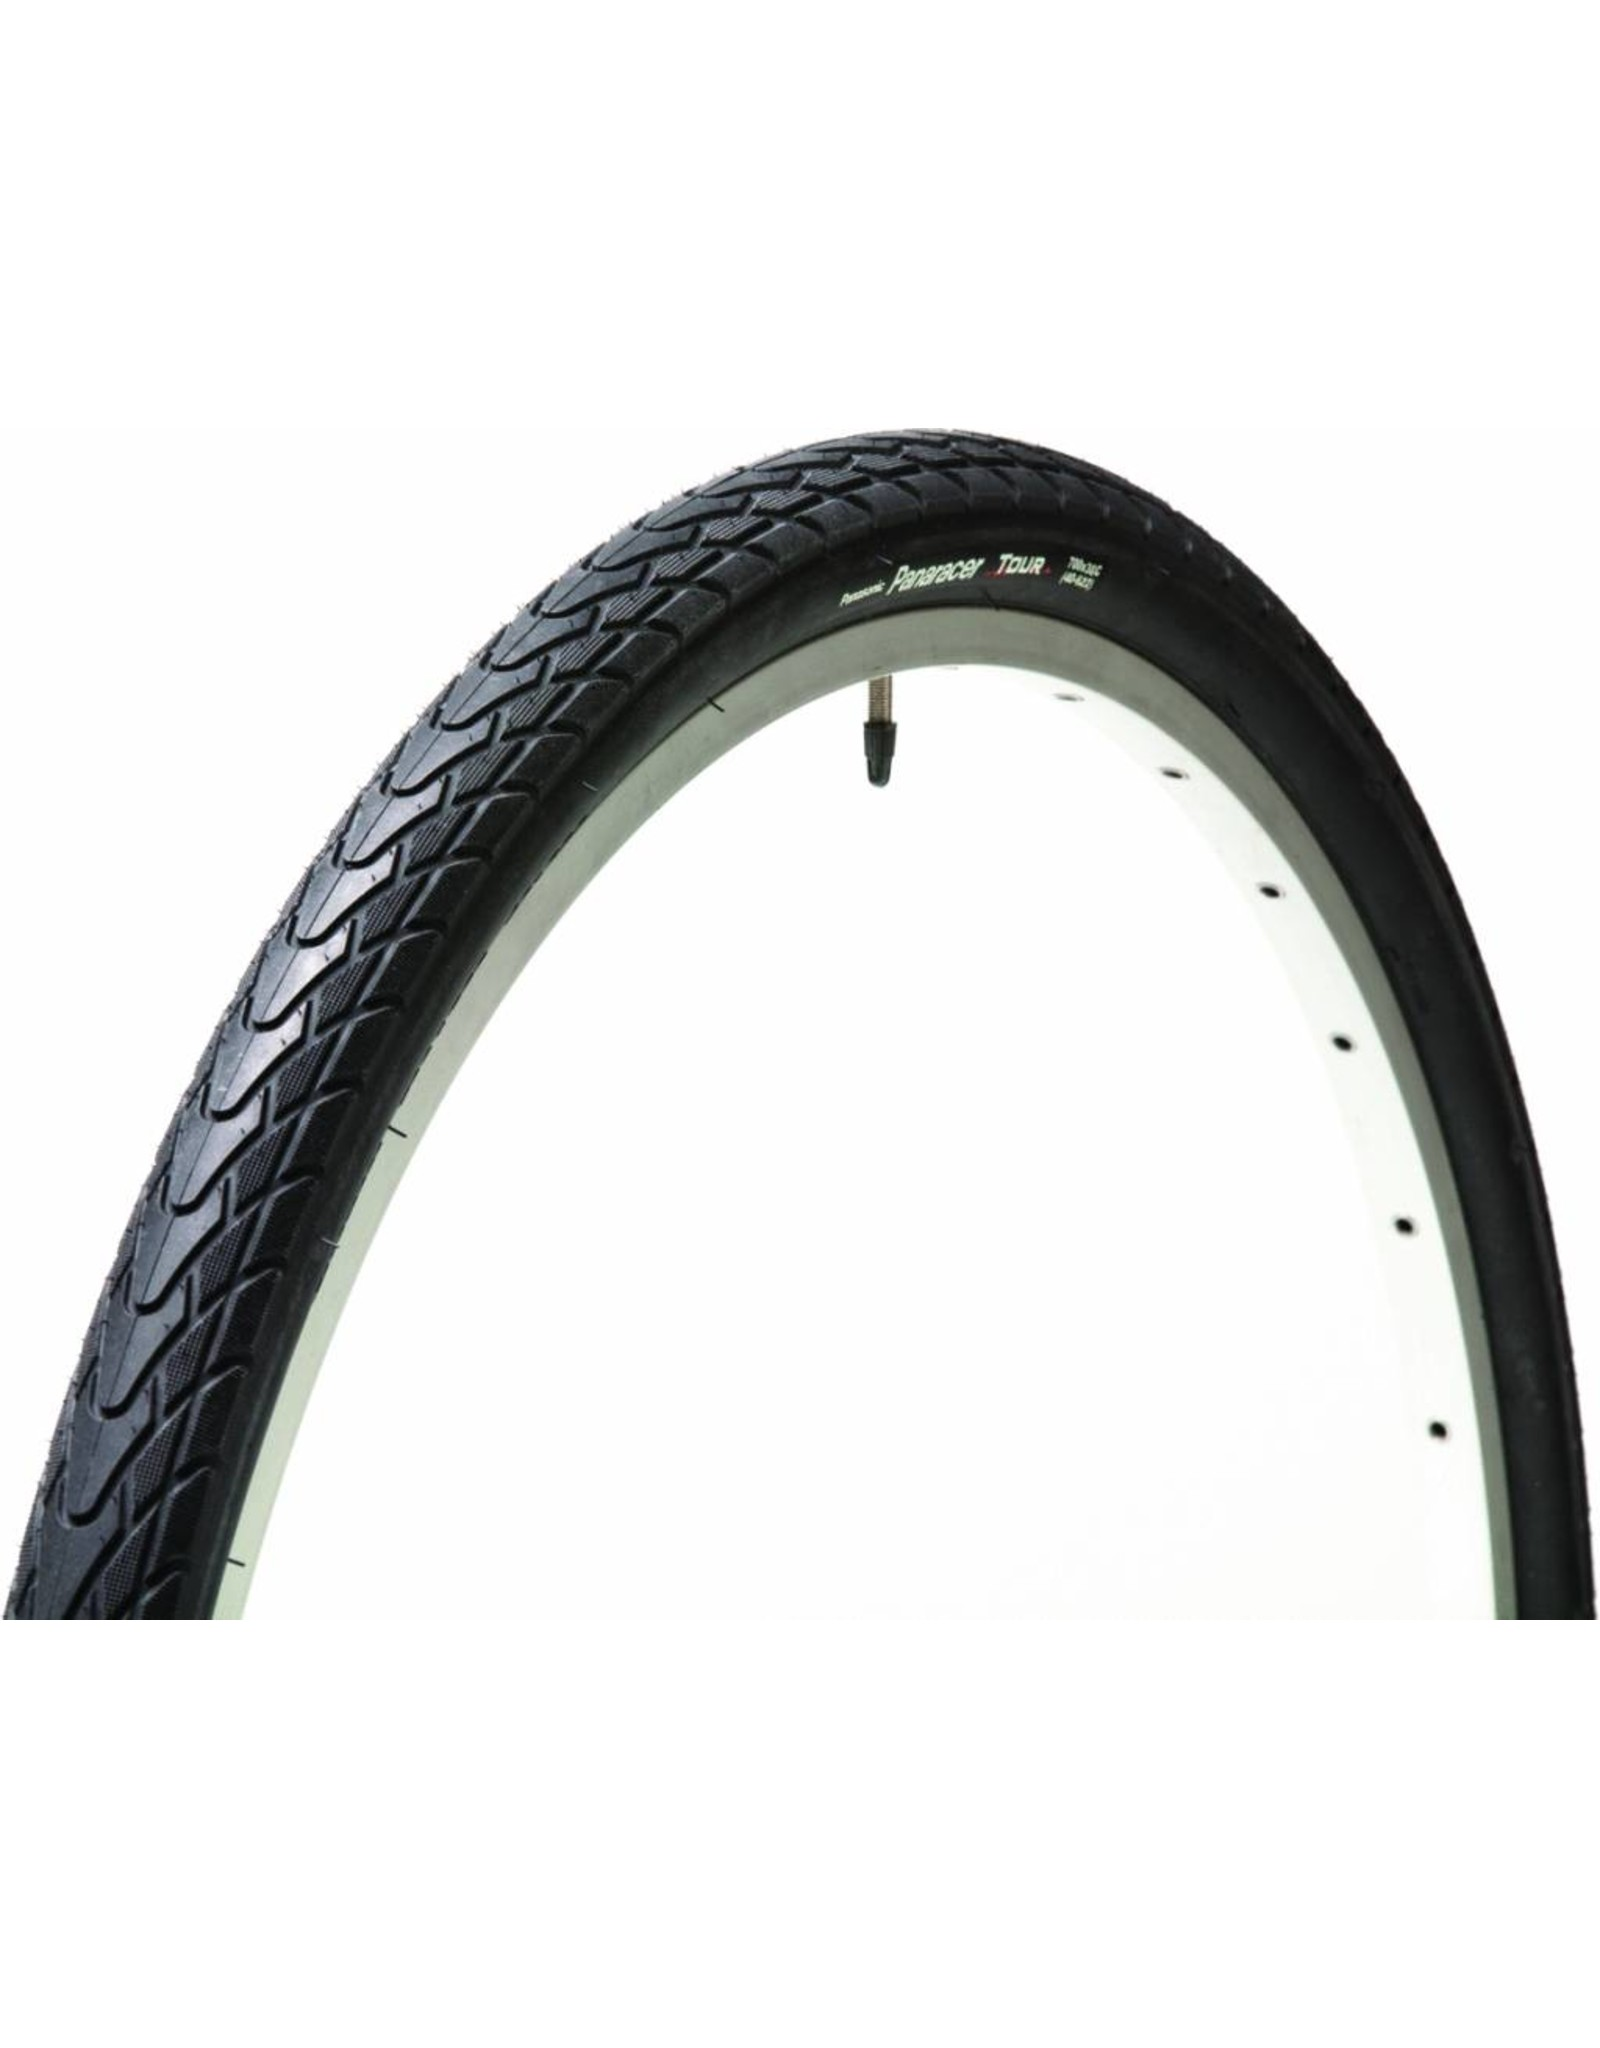 Panaracer Tour Tire 700x35